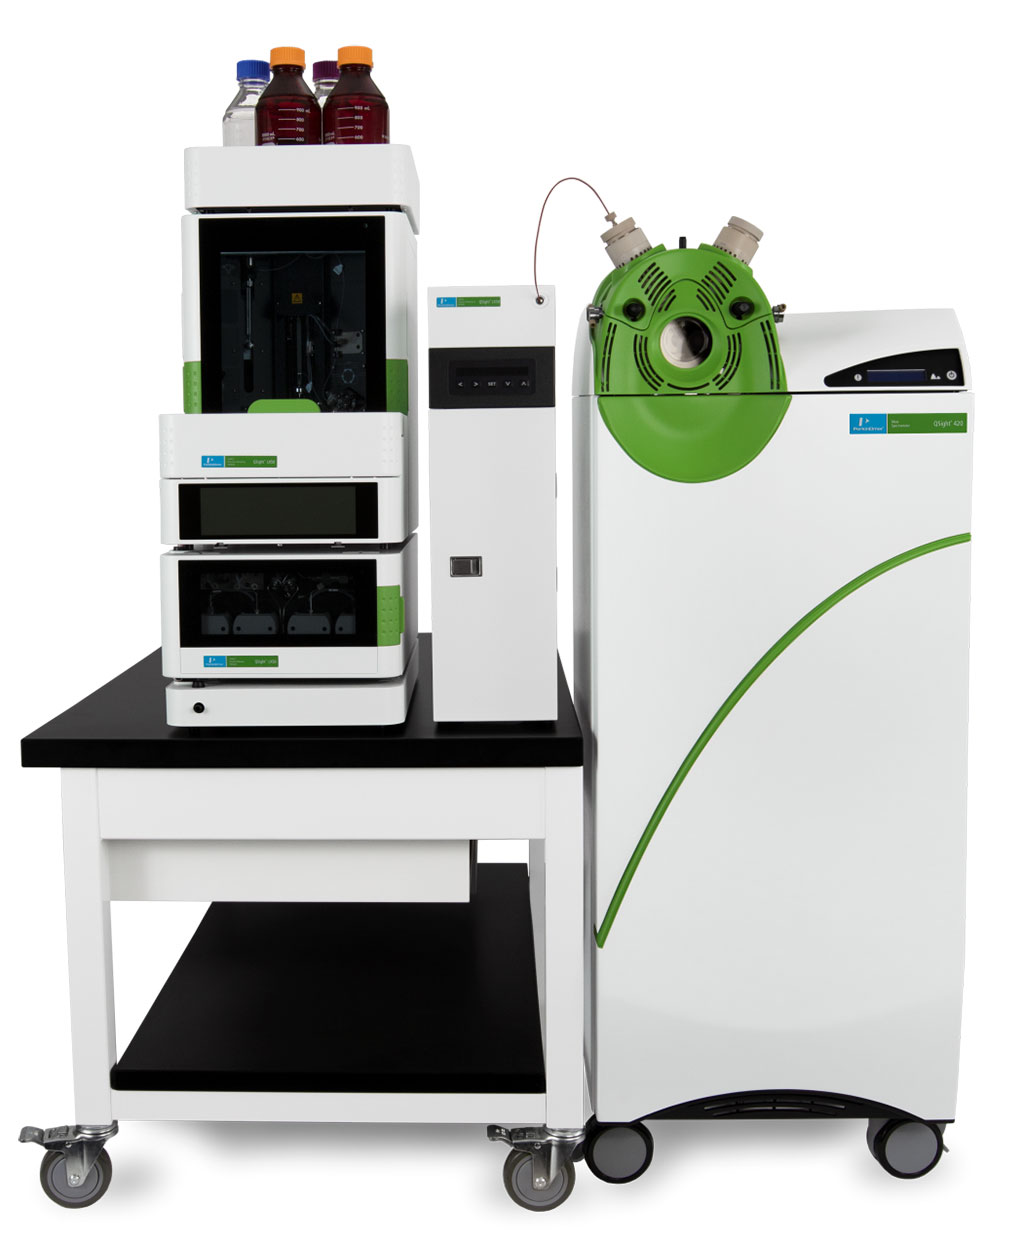 Image: The QSight Triple Quad 400 Series Liquid Chromatography Mass Spectrometry (Photo courtesy of PerkinElmer).